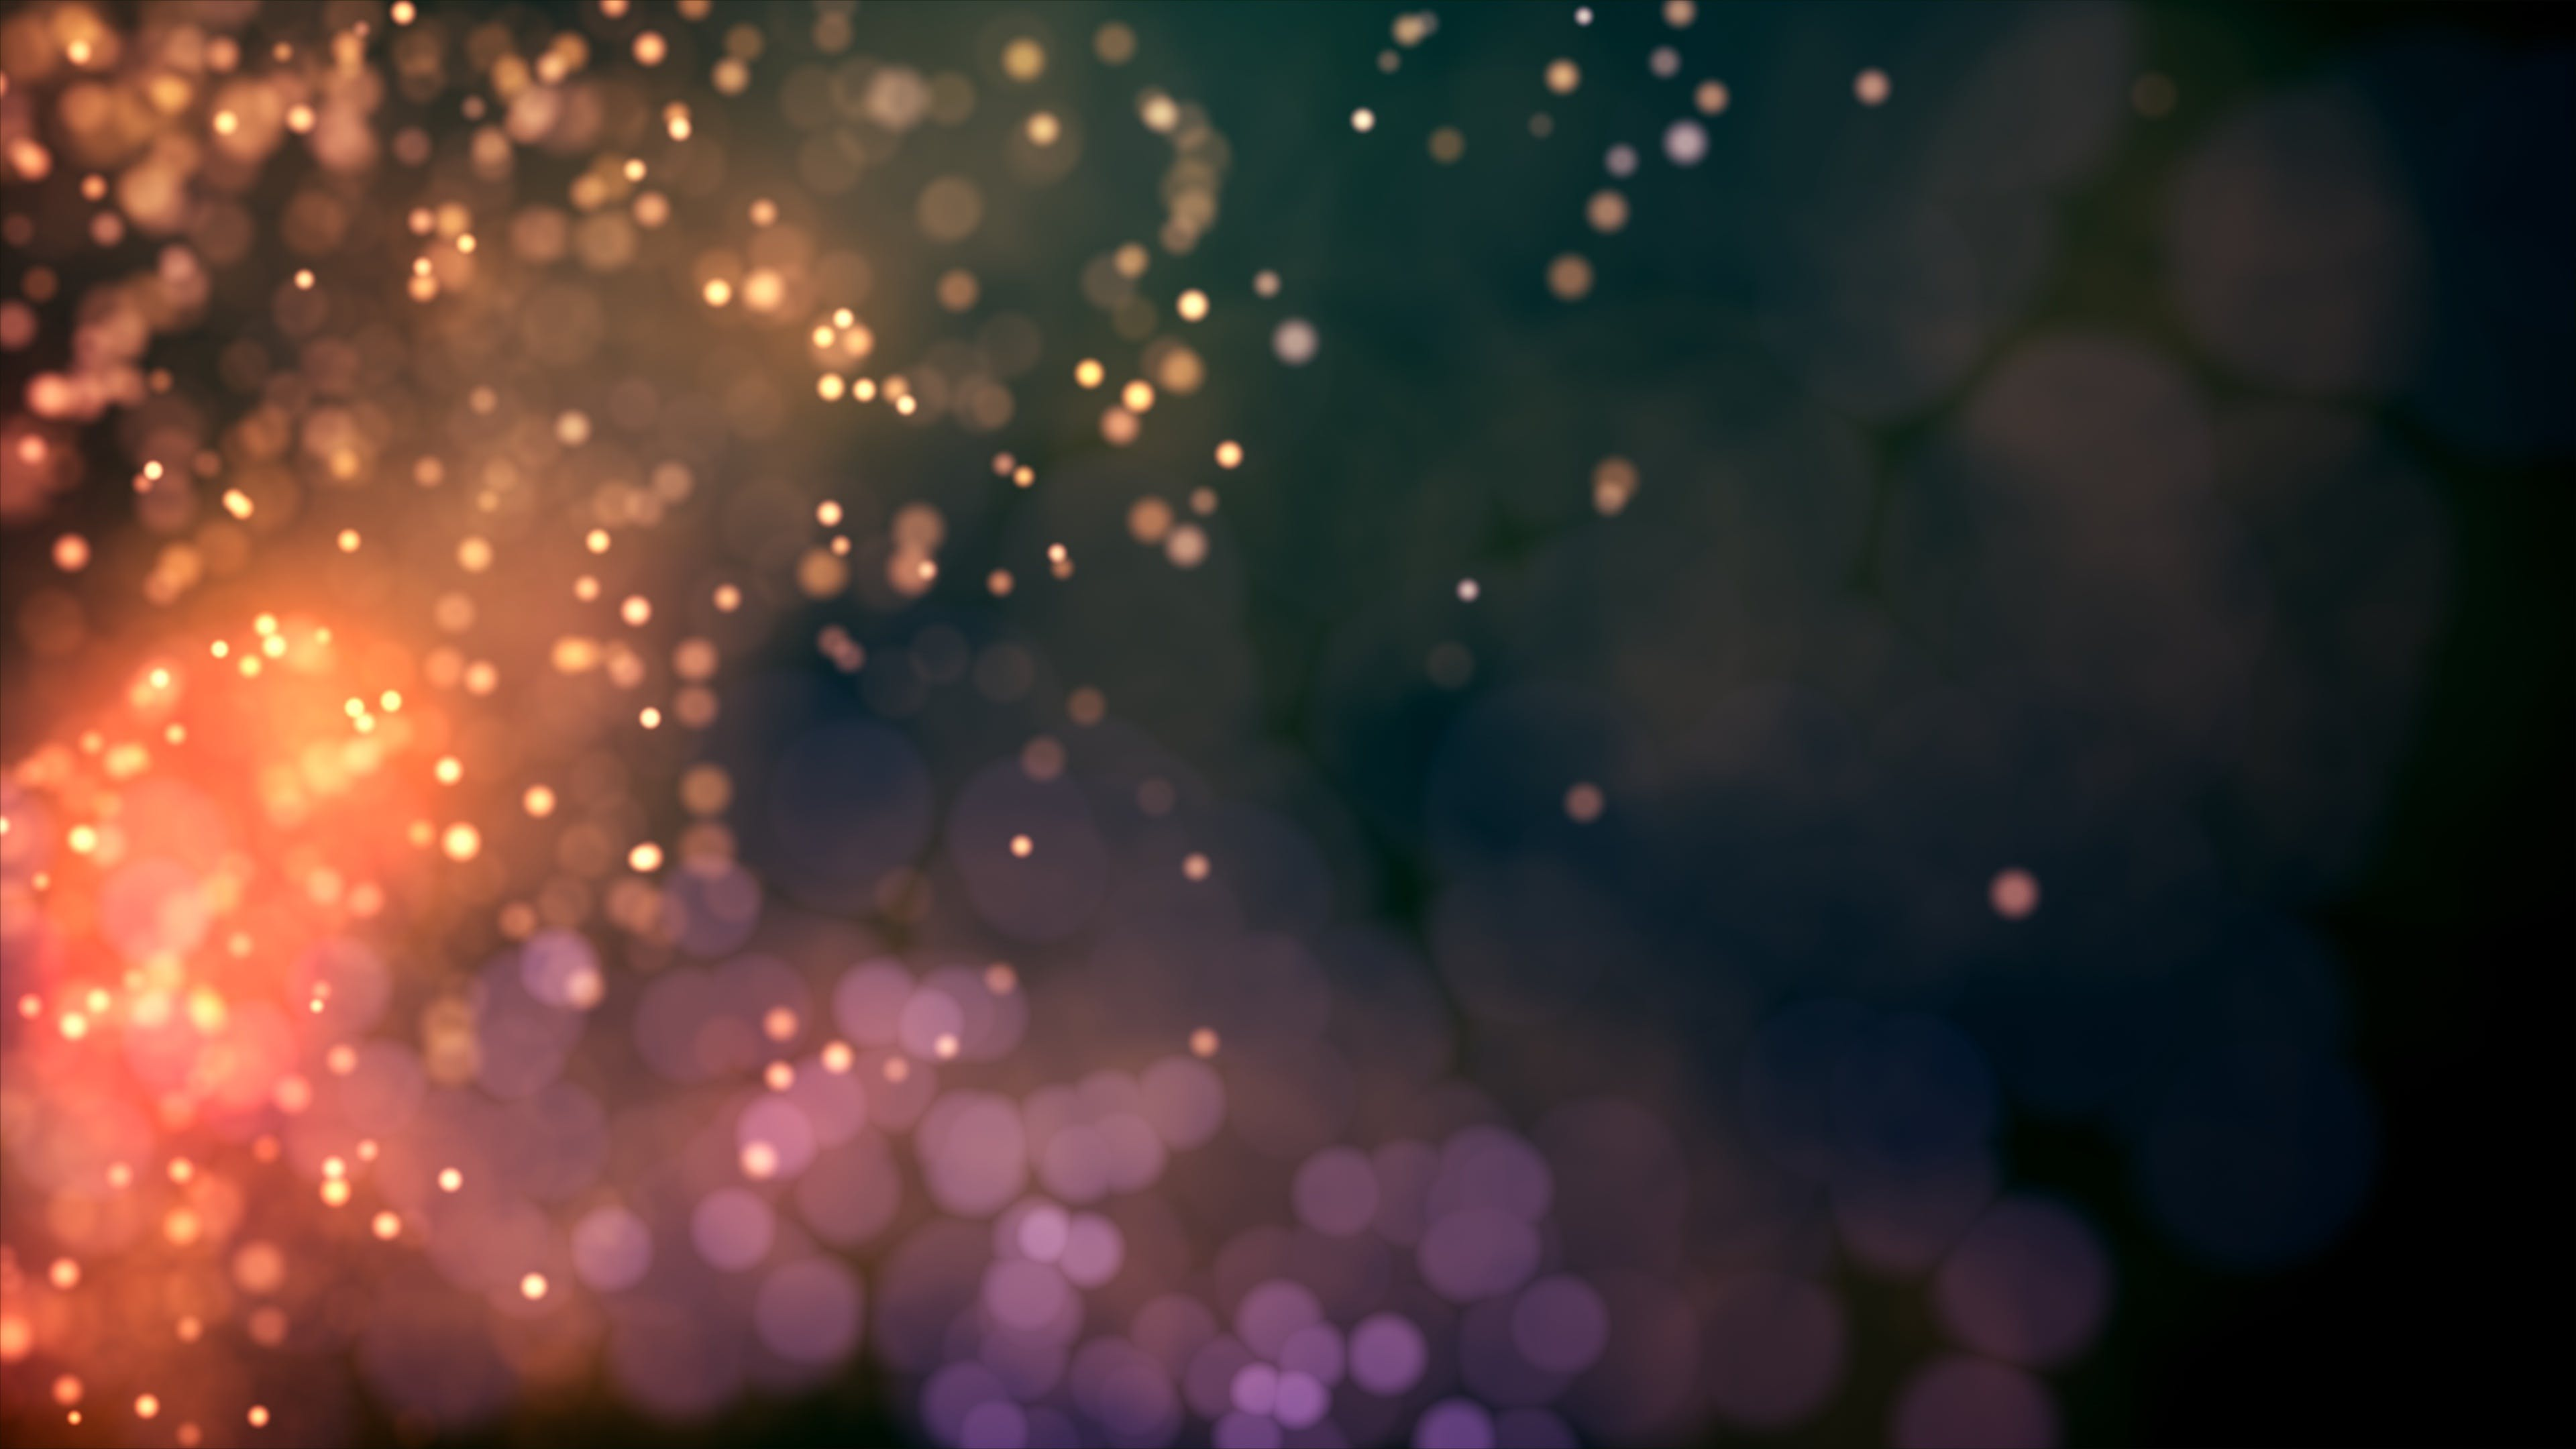 Free stock photo of space, abstract, galaxy, stars